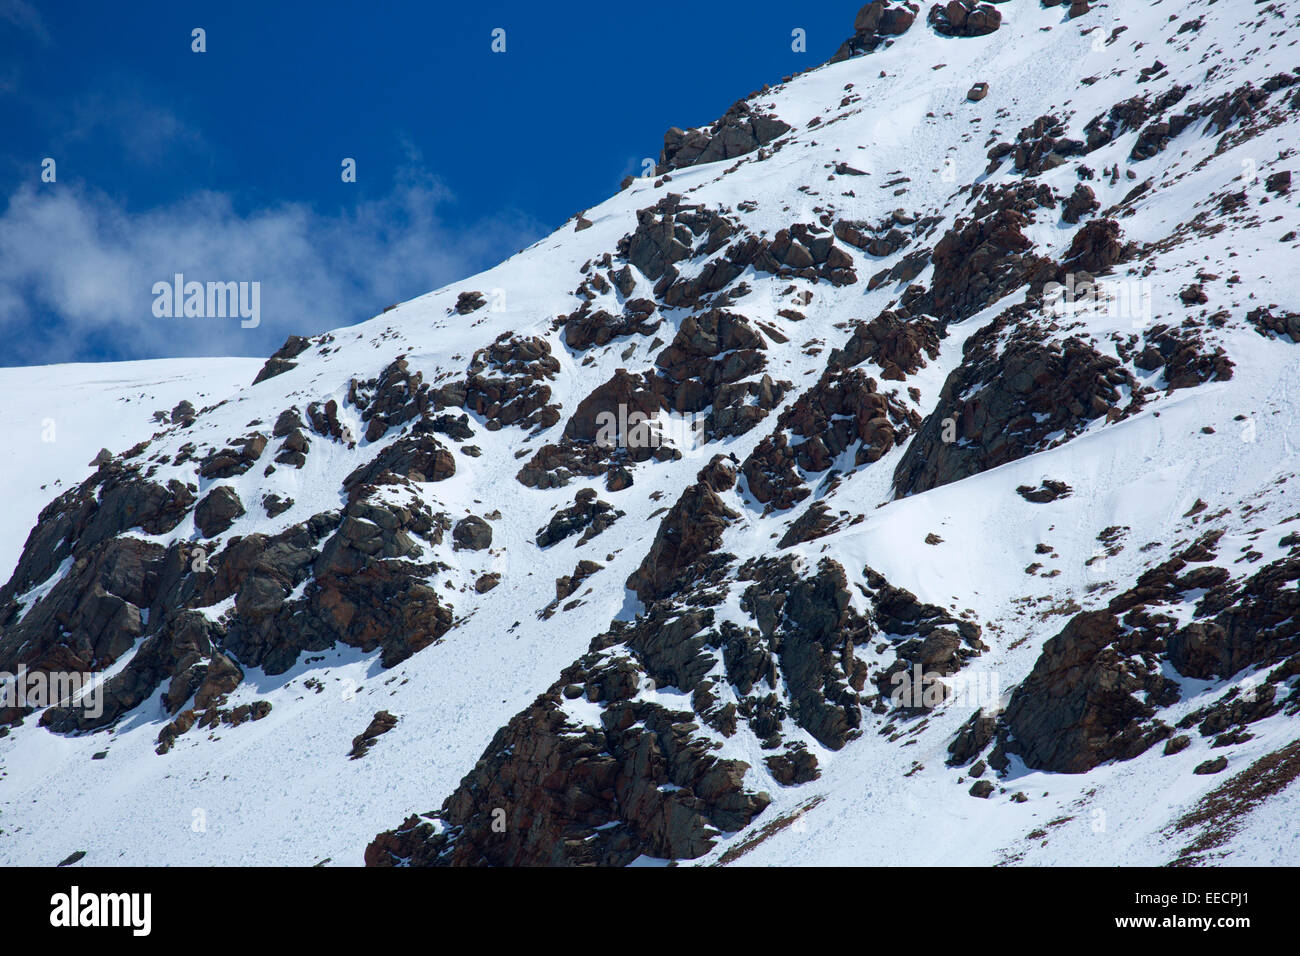 Sugarloaf Peak ridgeline, Arapaho National Forest, Guanella Pass Road Scenic Byway, Colorado - Stock Image